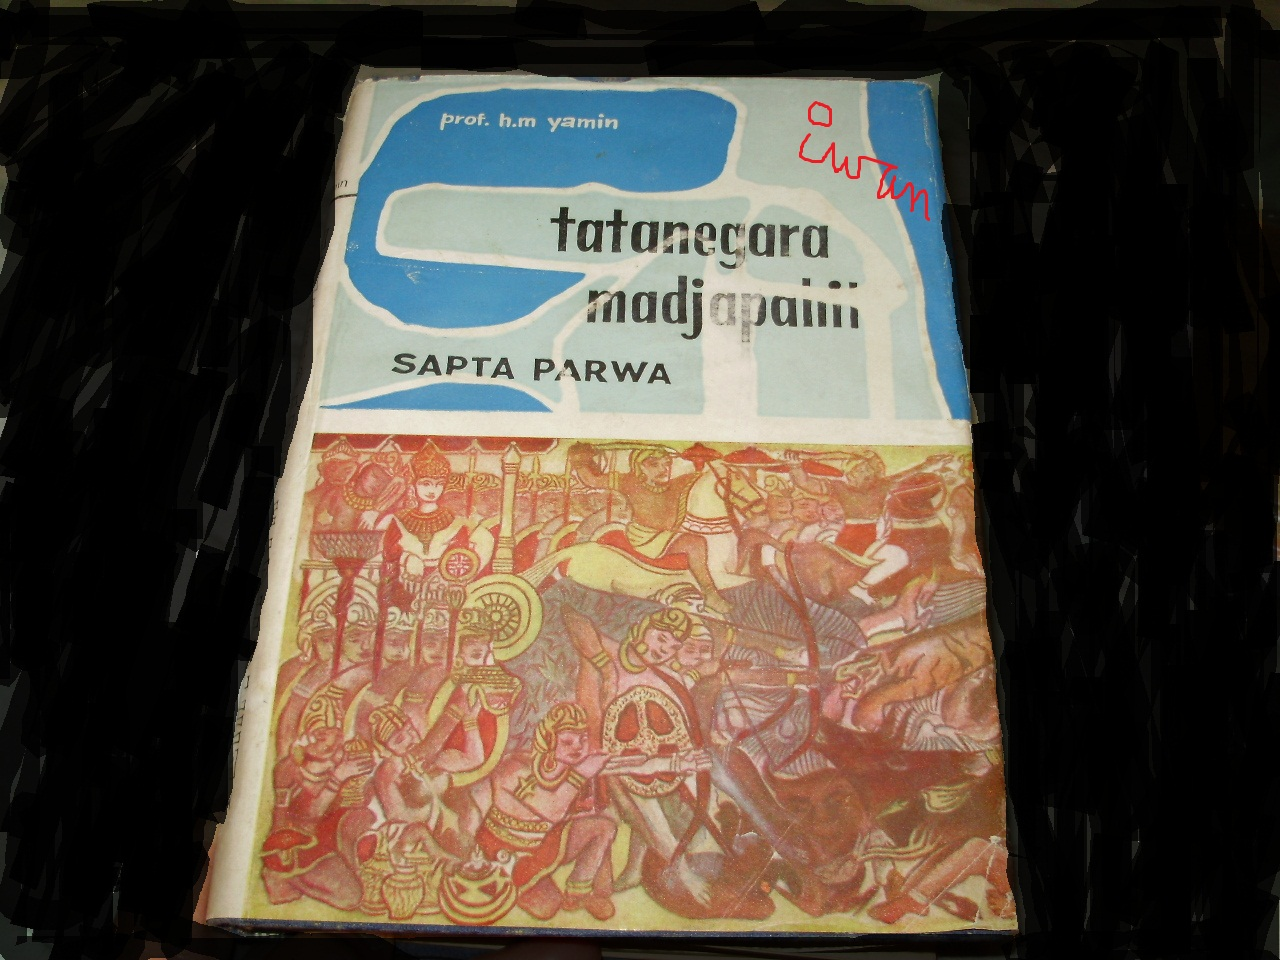 14 May 2011 Driwancybermuseums Blog Kaisar Angguna 250 Cc 1this Amizing Book Based On Several My Rare Old Books Collections